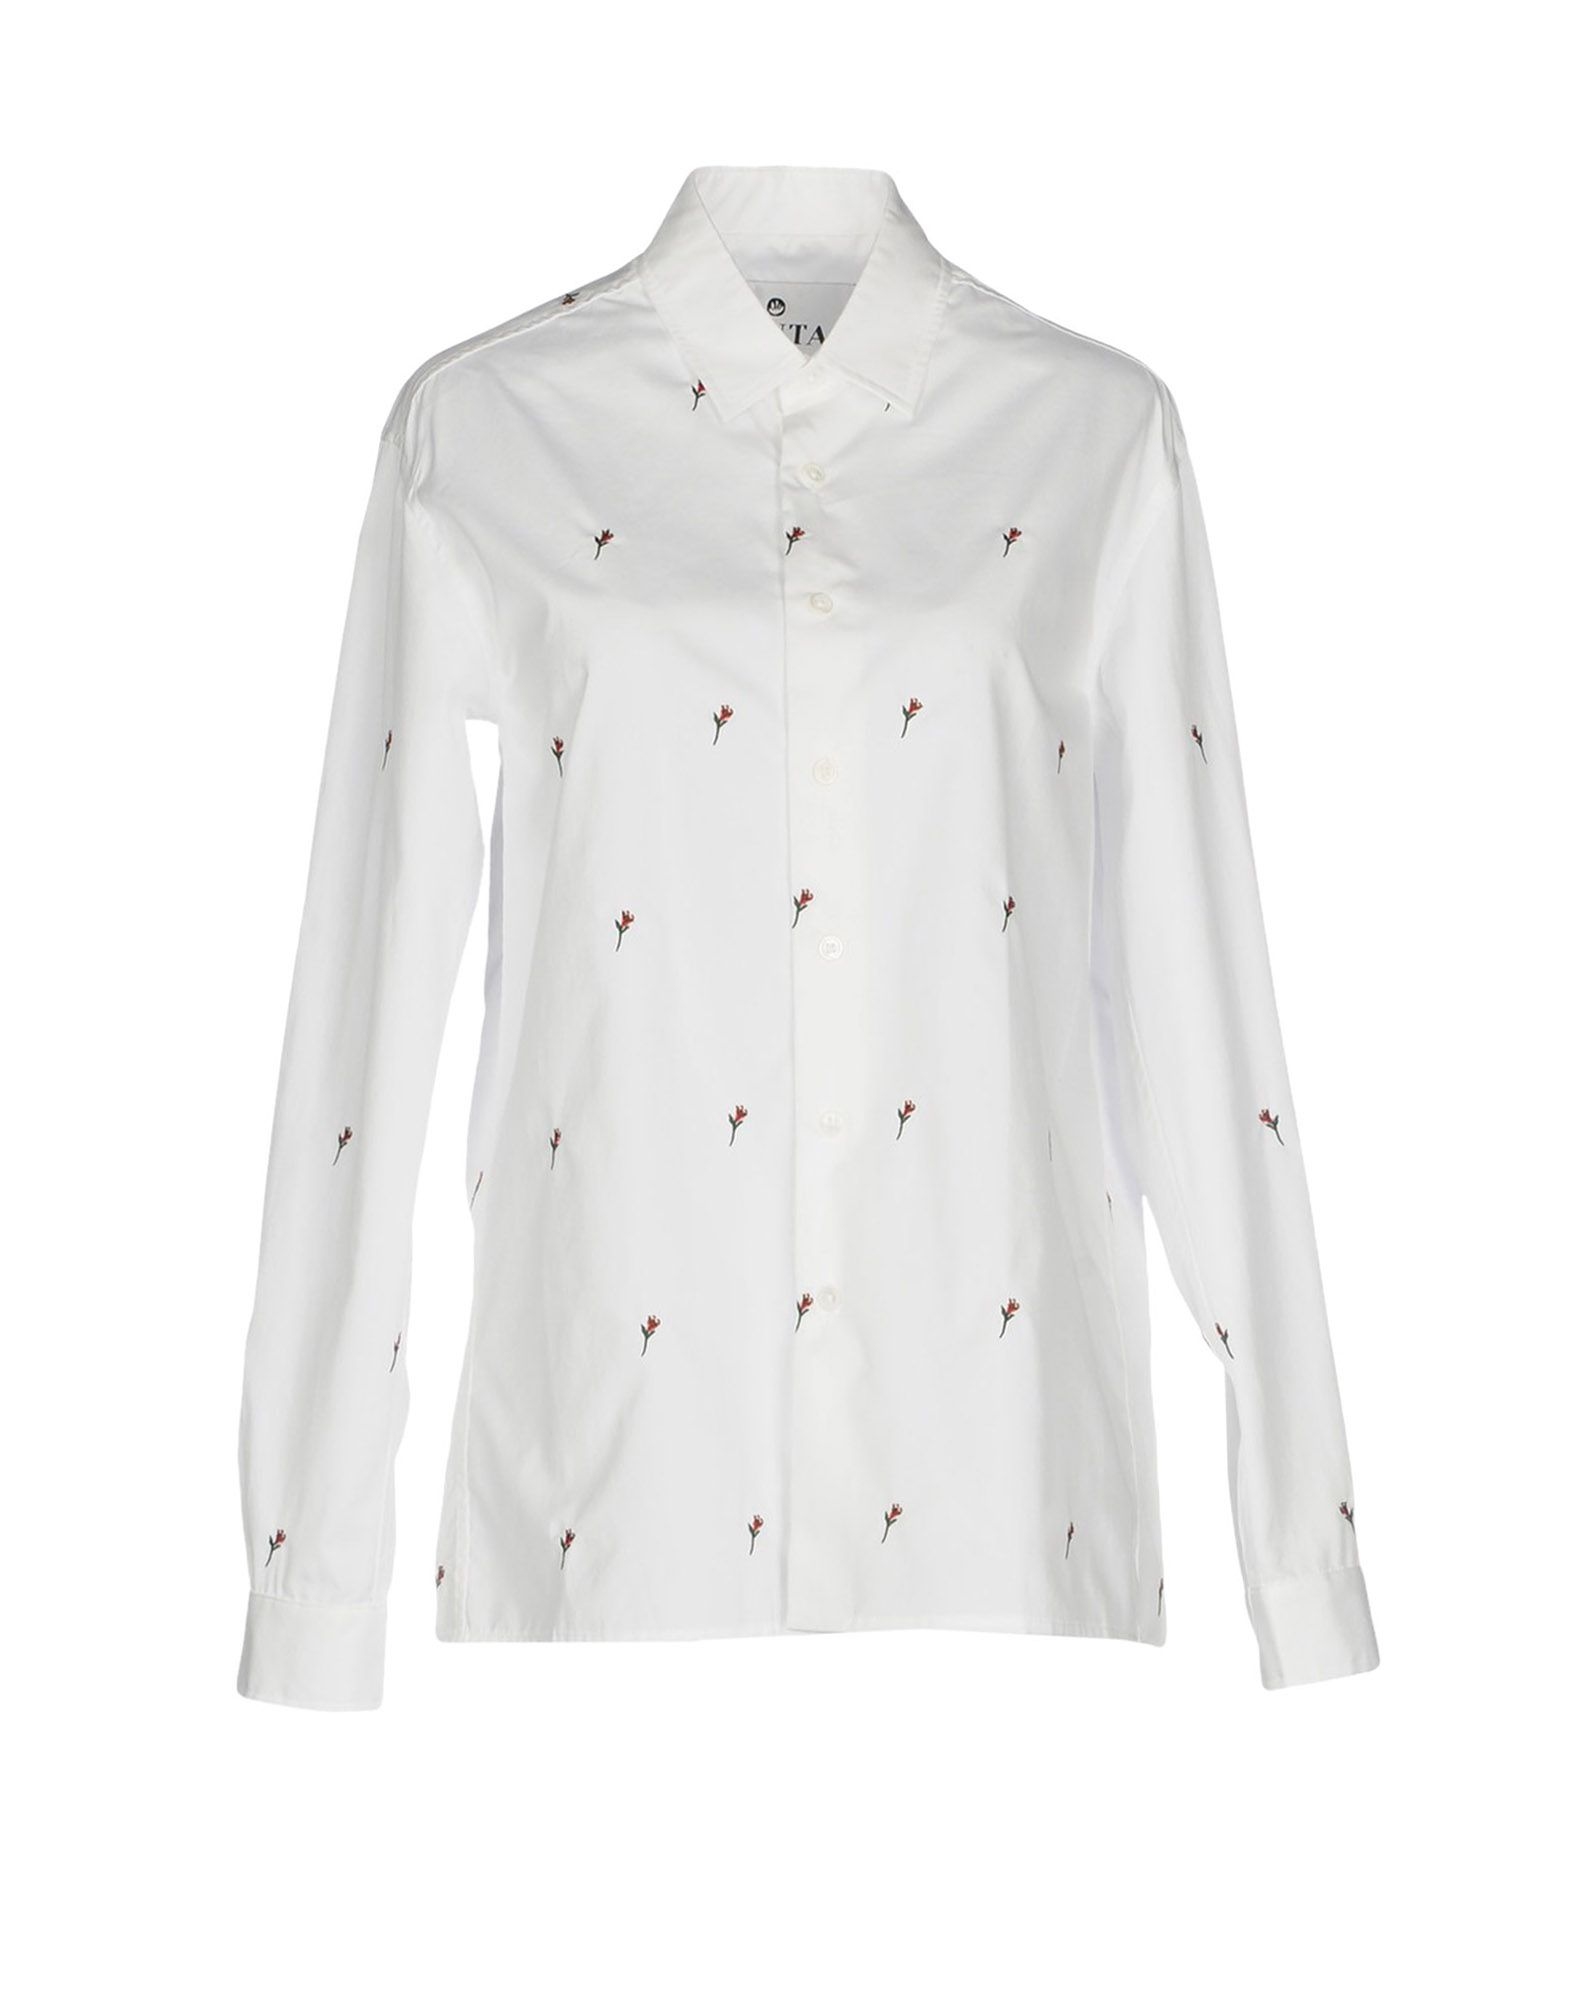 BRUTA Floral Shirts & Blouses in White